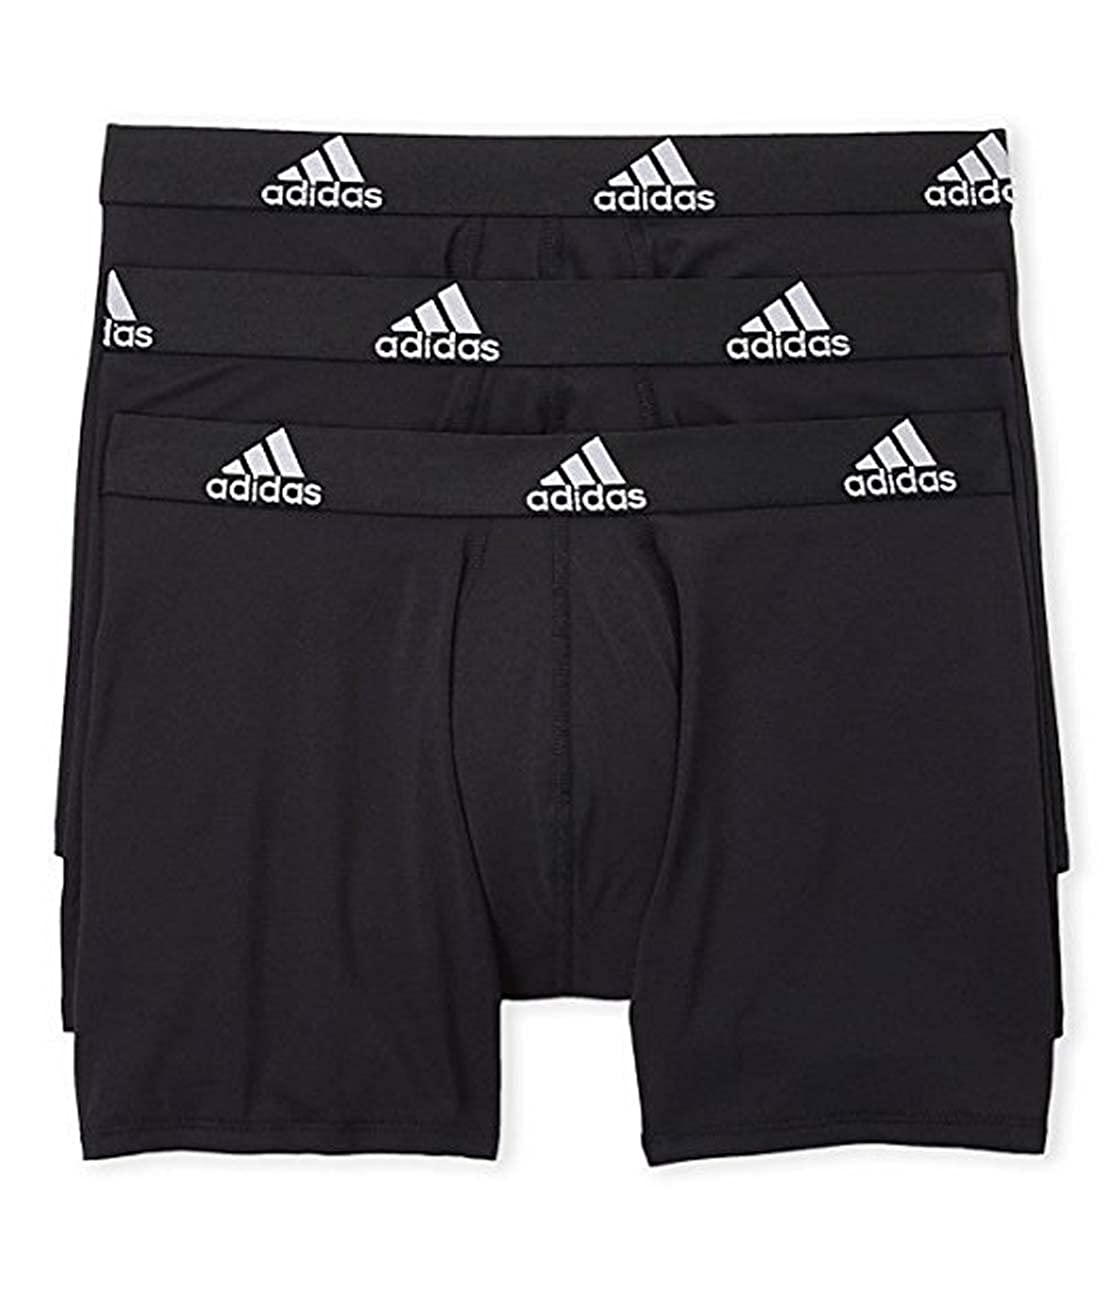 5027b99ea229 adidas Mens 3 Pack Climalite Performance Boxer Briefs at Amazon Men s  Clothing store